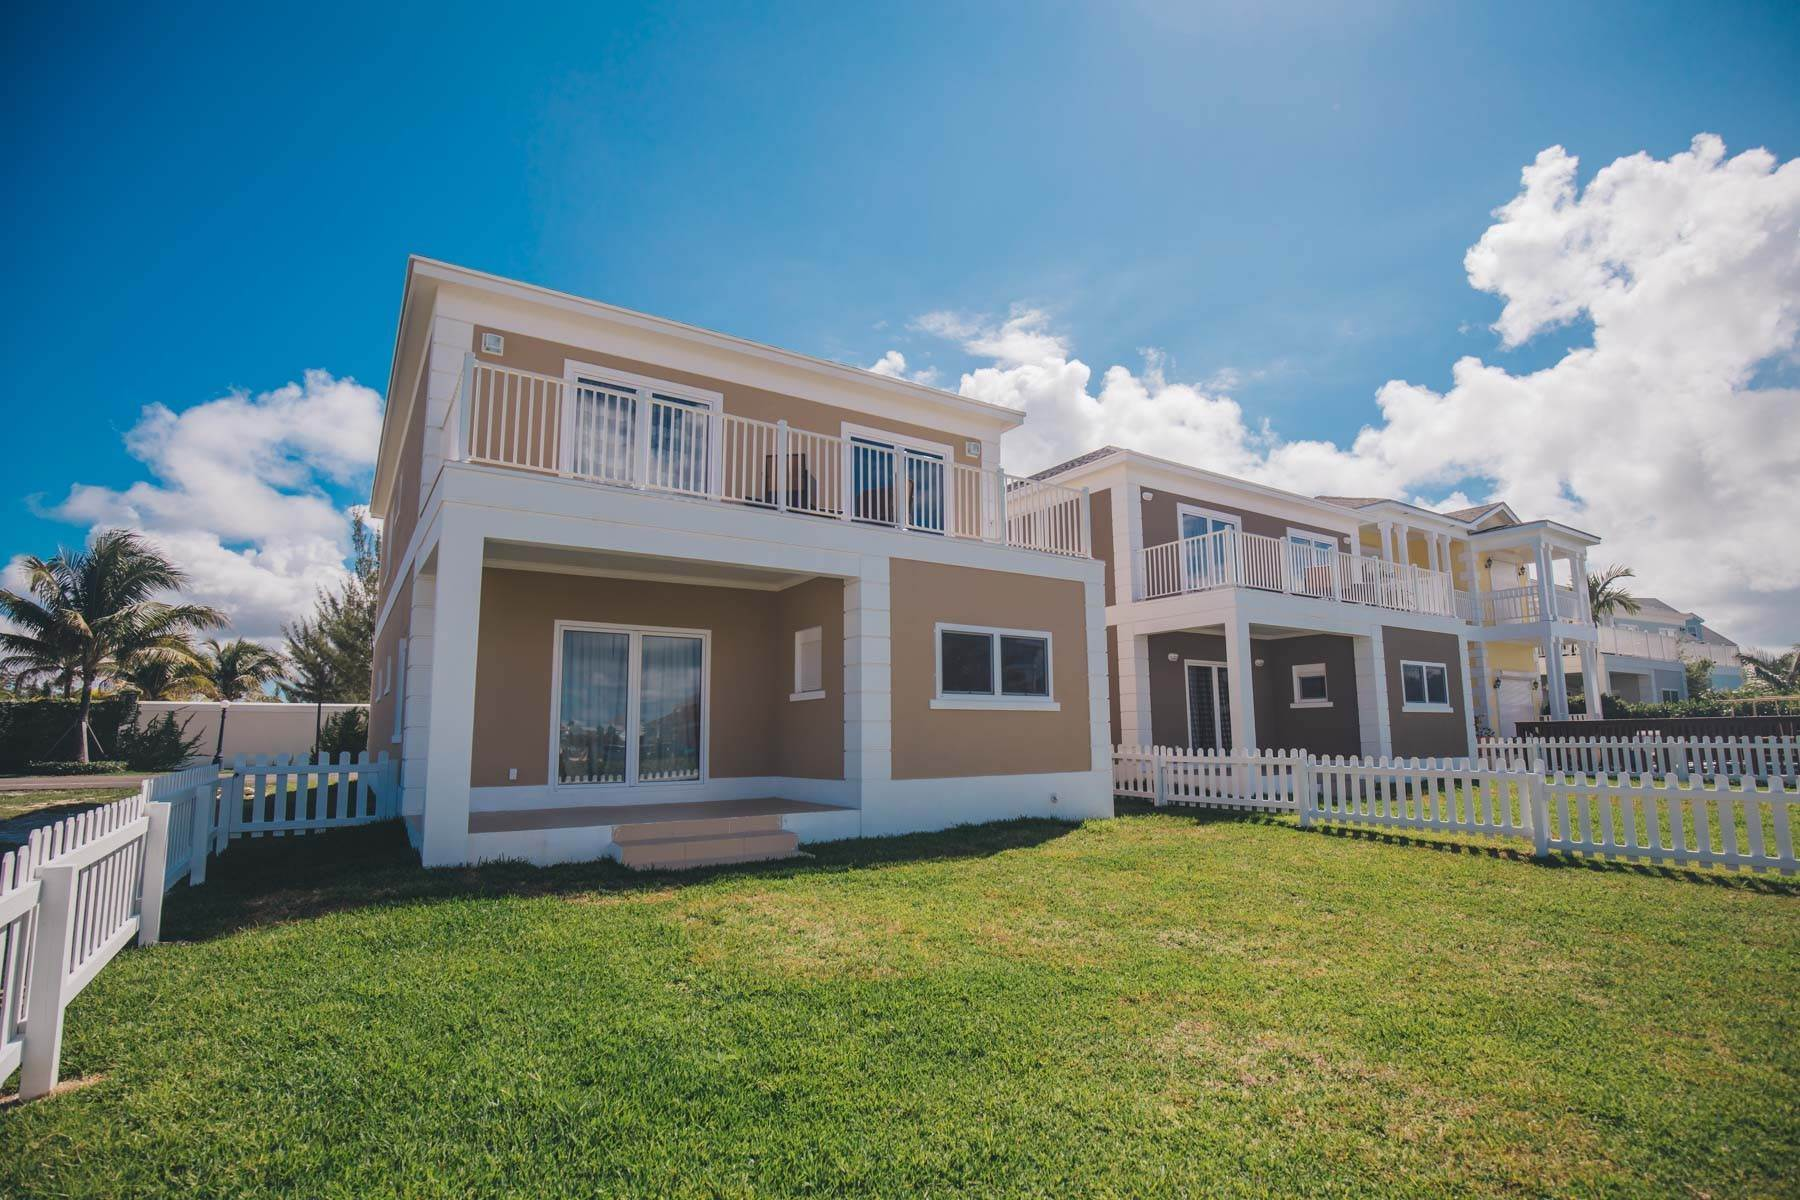 Single Family Homes for Sale at Modern 4 bedroom Home in Sandyport Sandyport, Cable Beach, Nassau And Paradise Island Bahamas